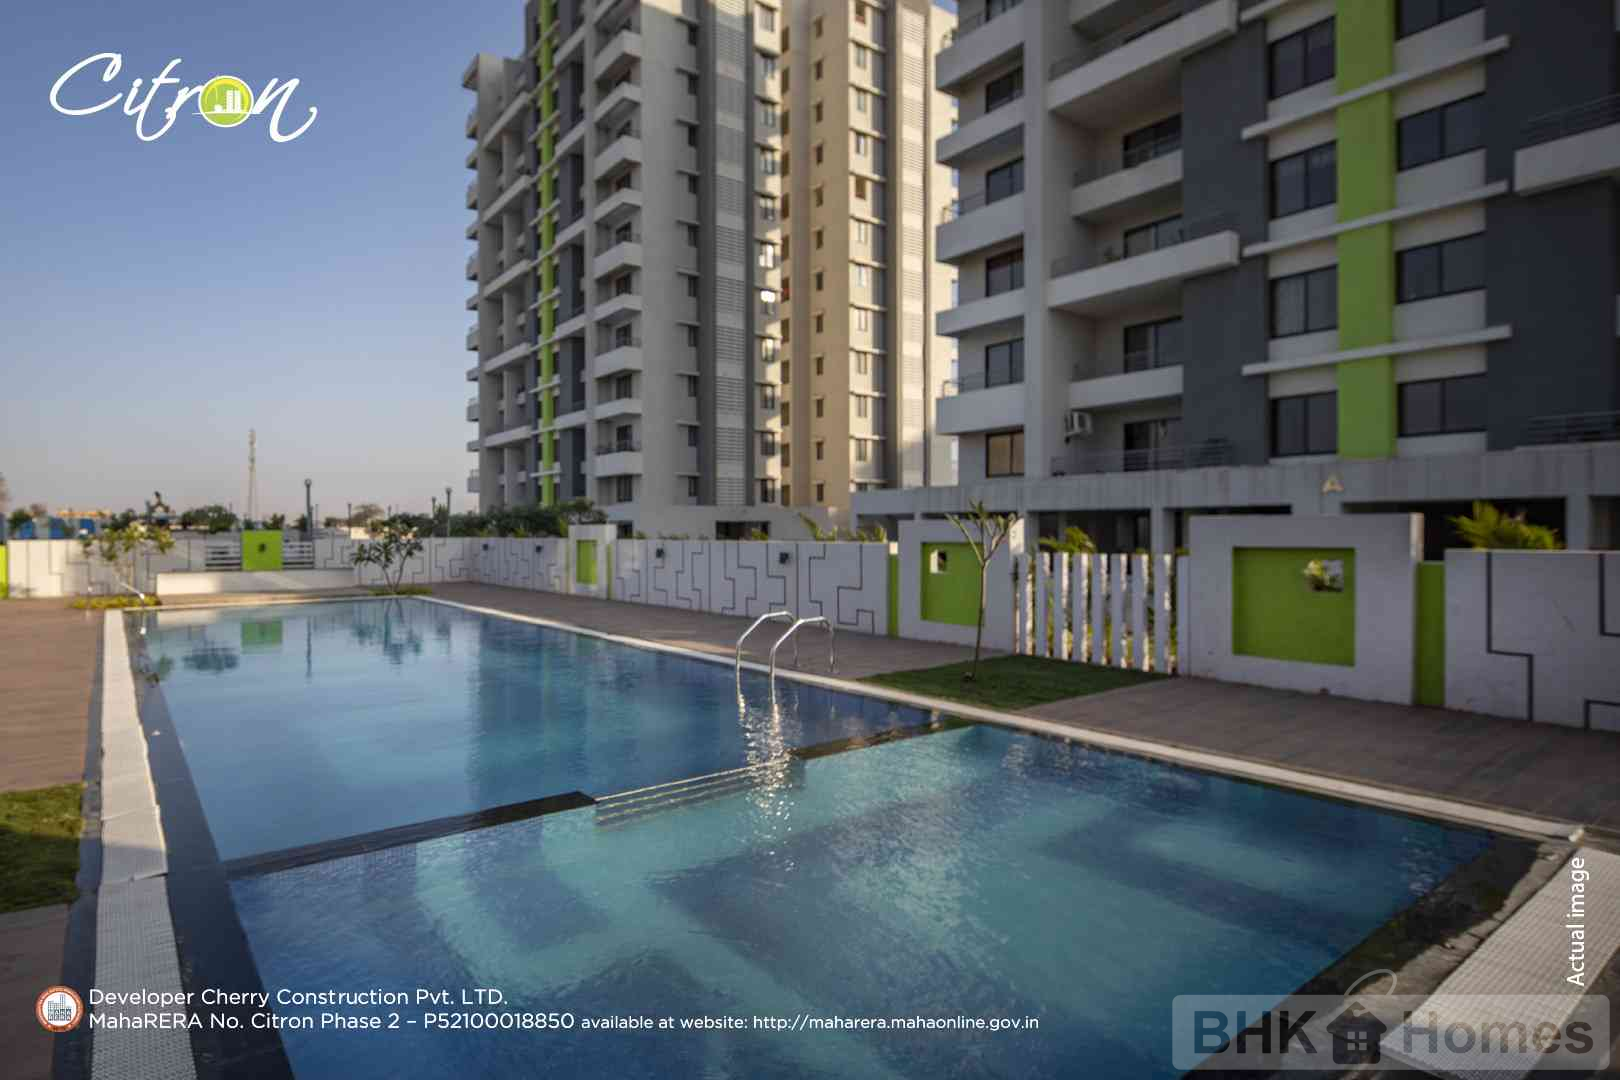 1 BHK Resale Apartment for Sale at  Wagholi